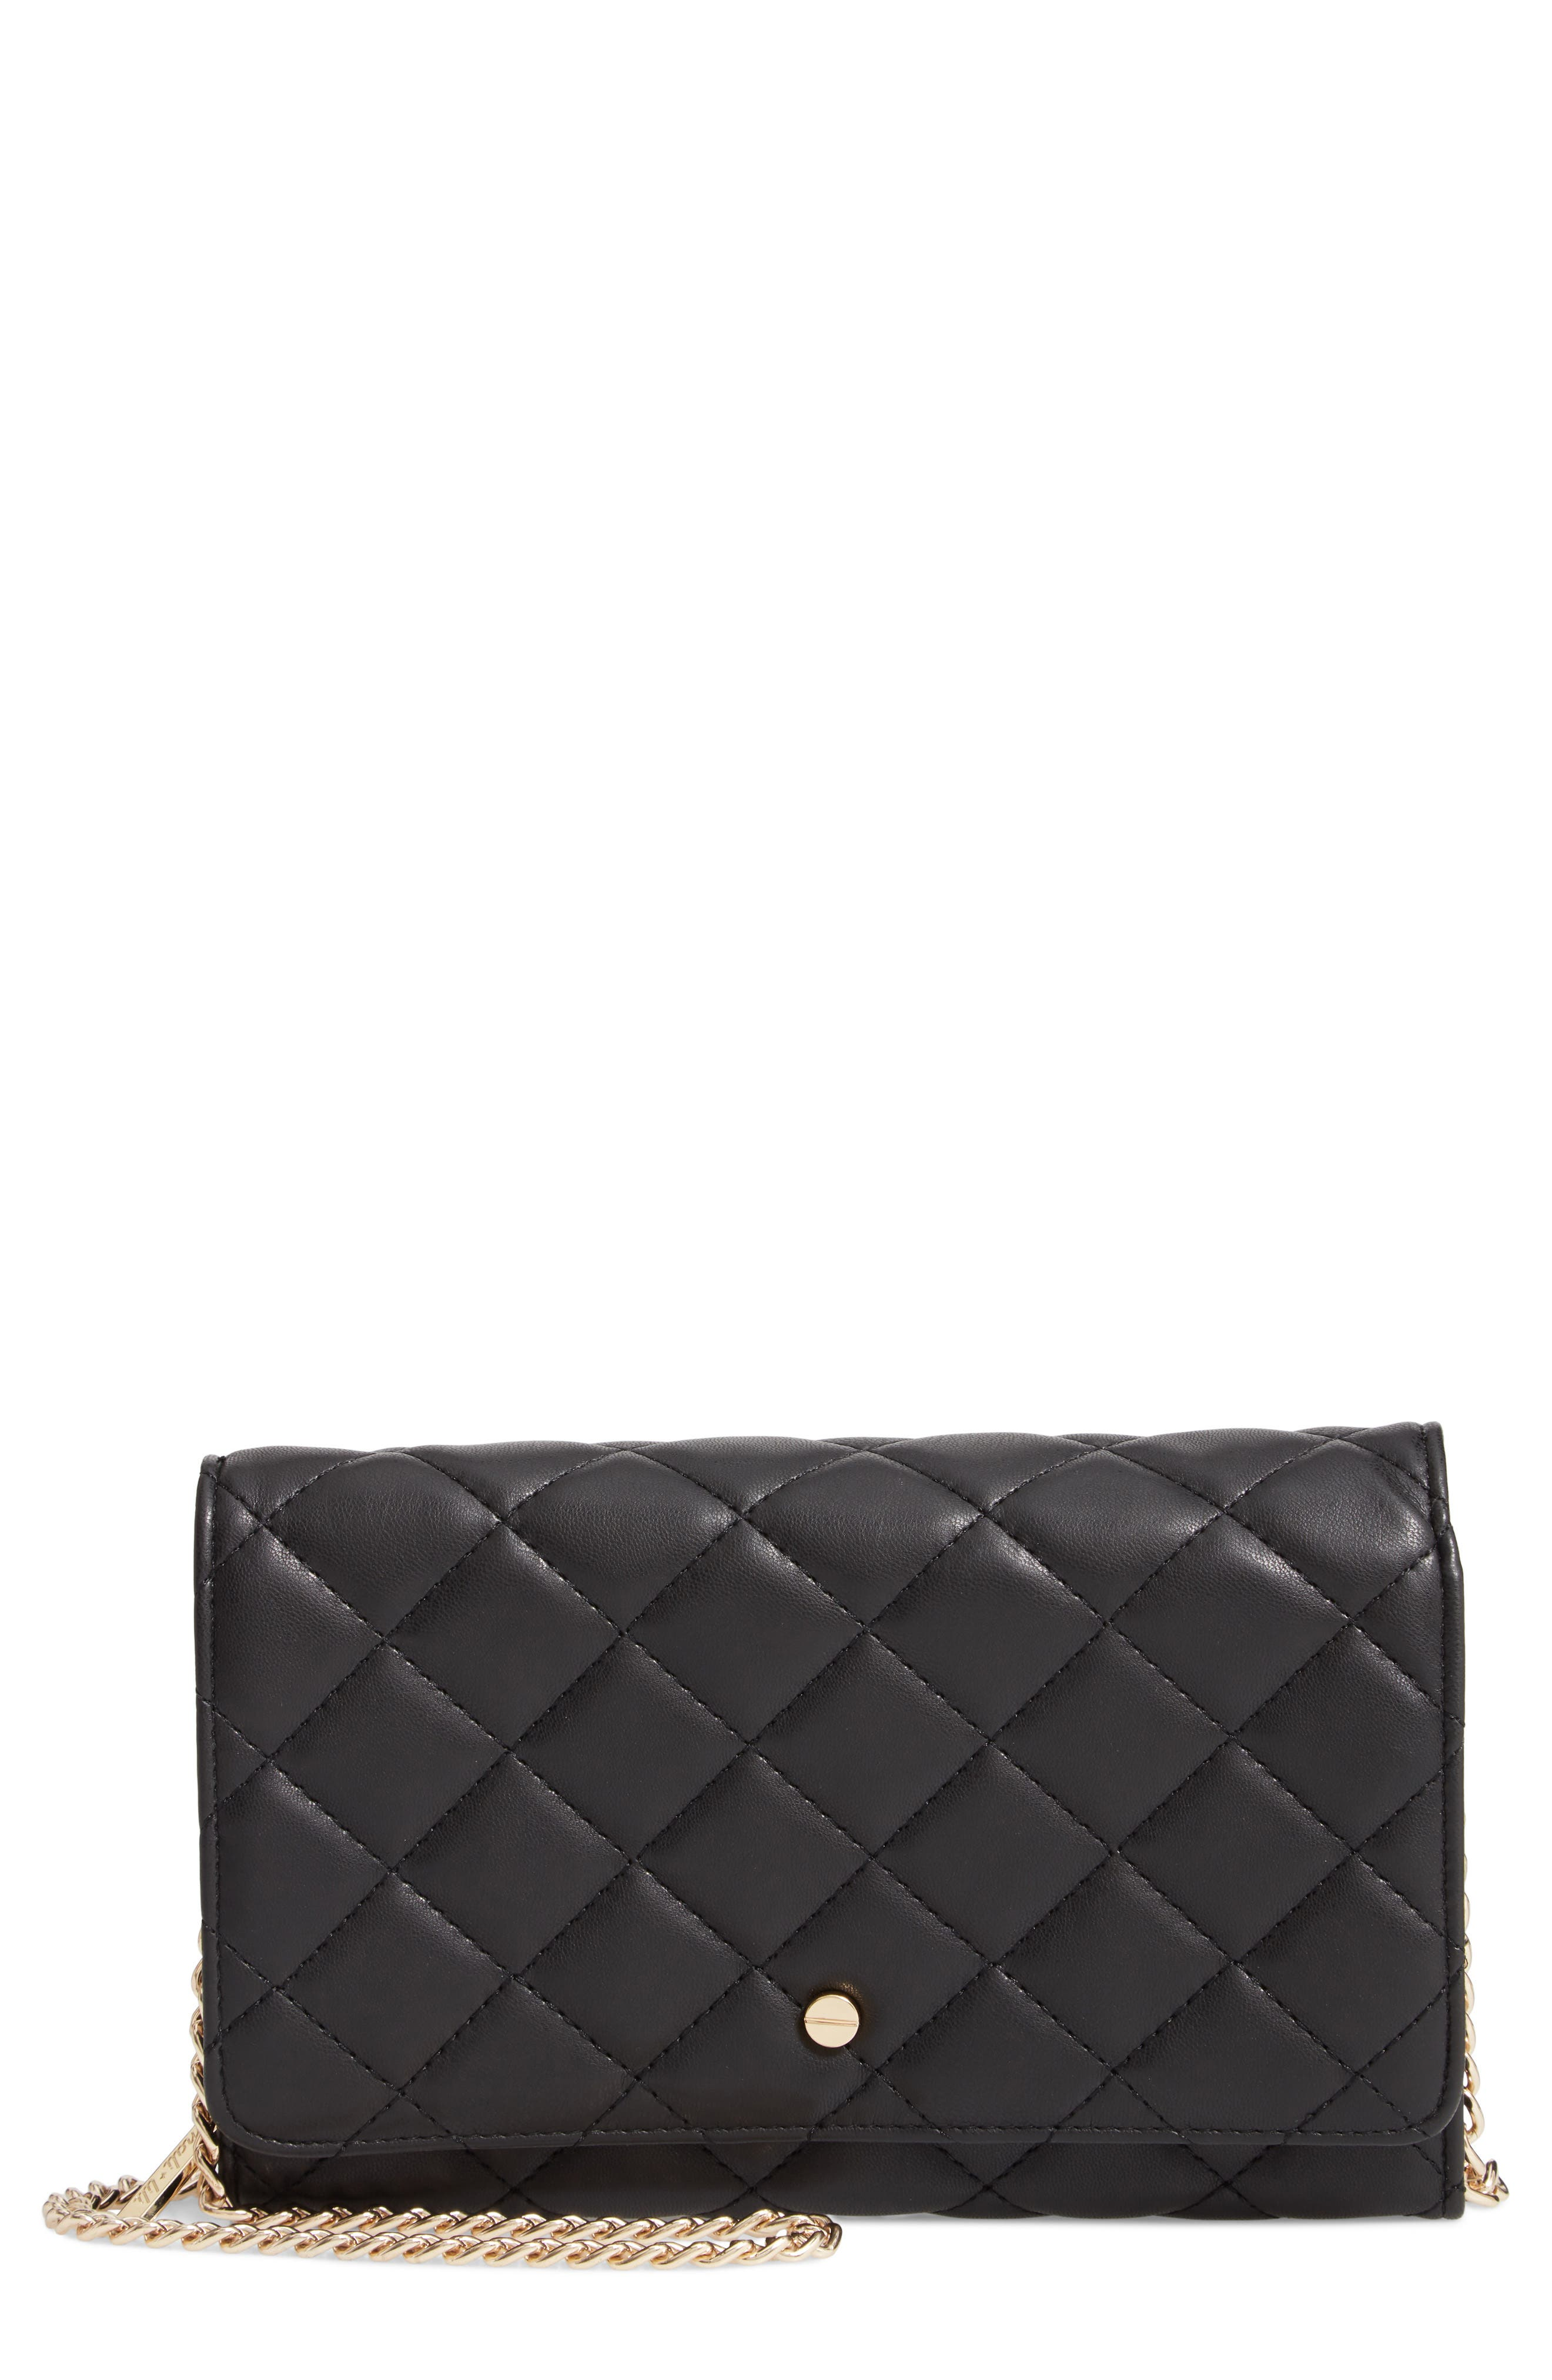 Mali + Lili Ciara Quilted Vegan Leather Convertible Clutch,                             Main thumbnail 1, color,                             BLACK